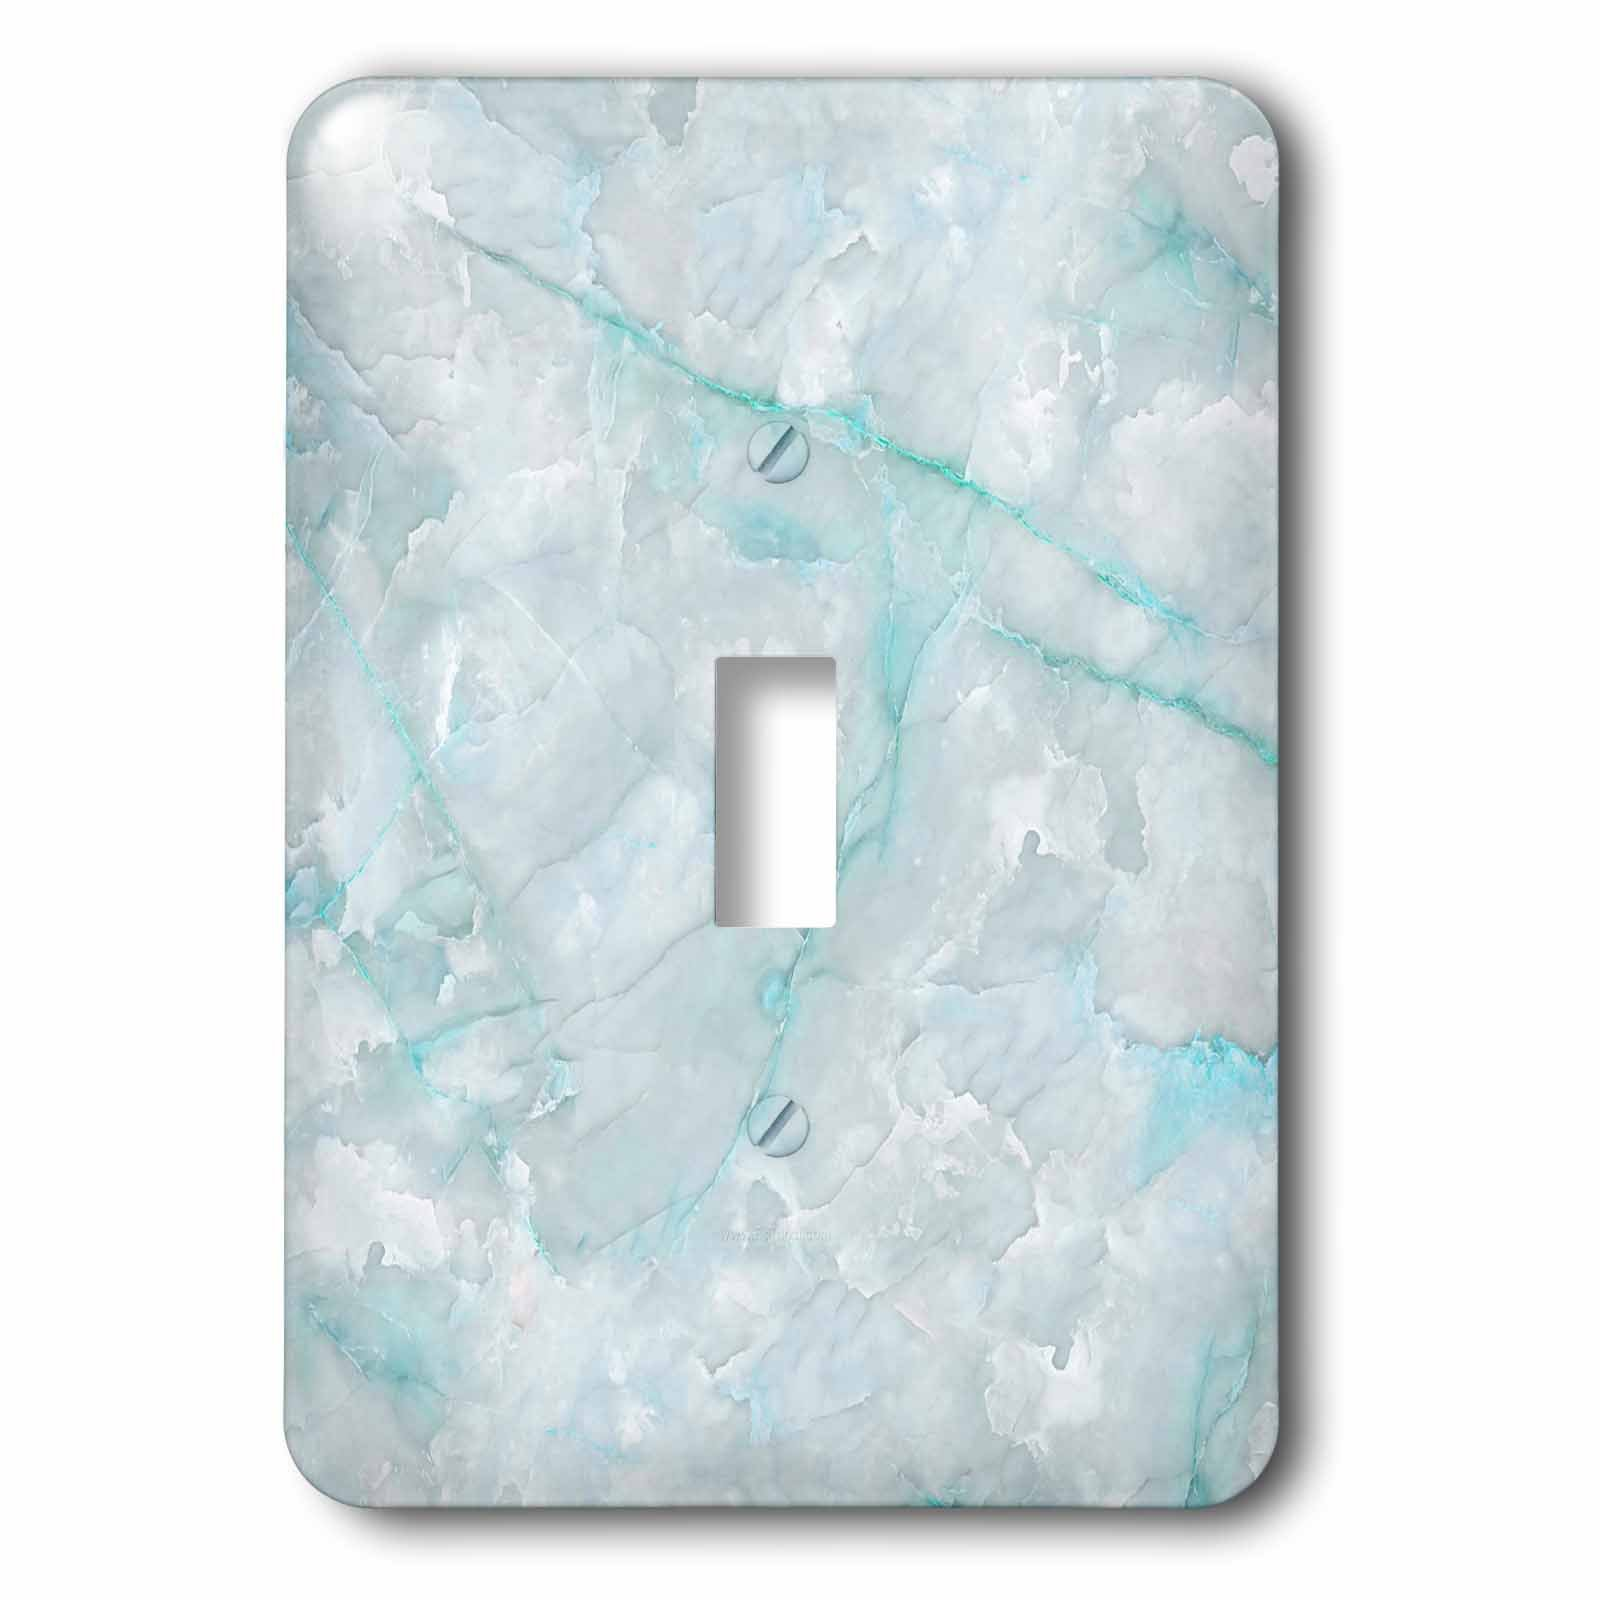 3dRose LSP_275124_1 Image of Trendy Luxury Aqua Teal Quartz and Gray Gemstone Agate Geode Toggle Switch, Multicolor